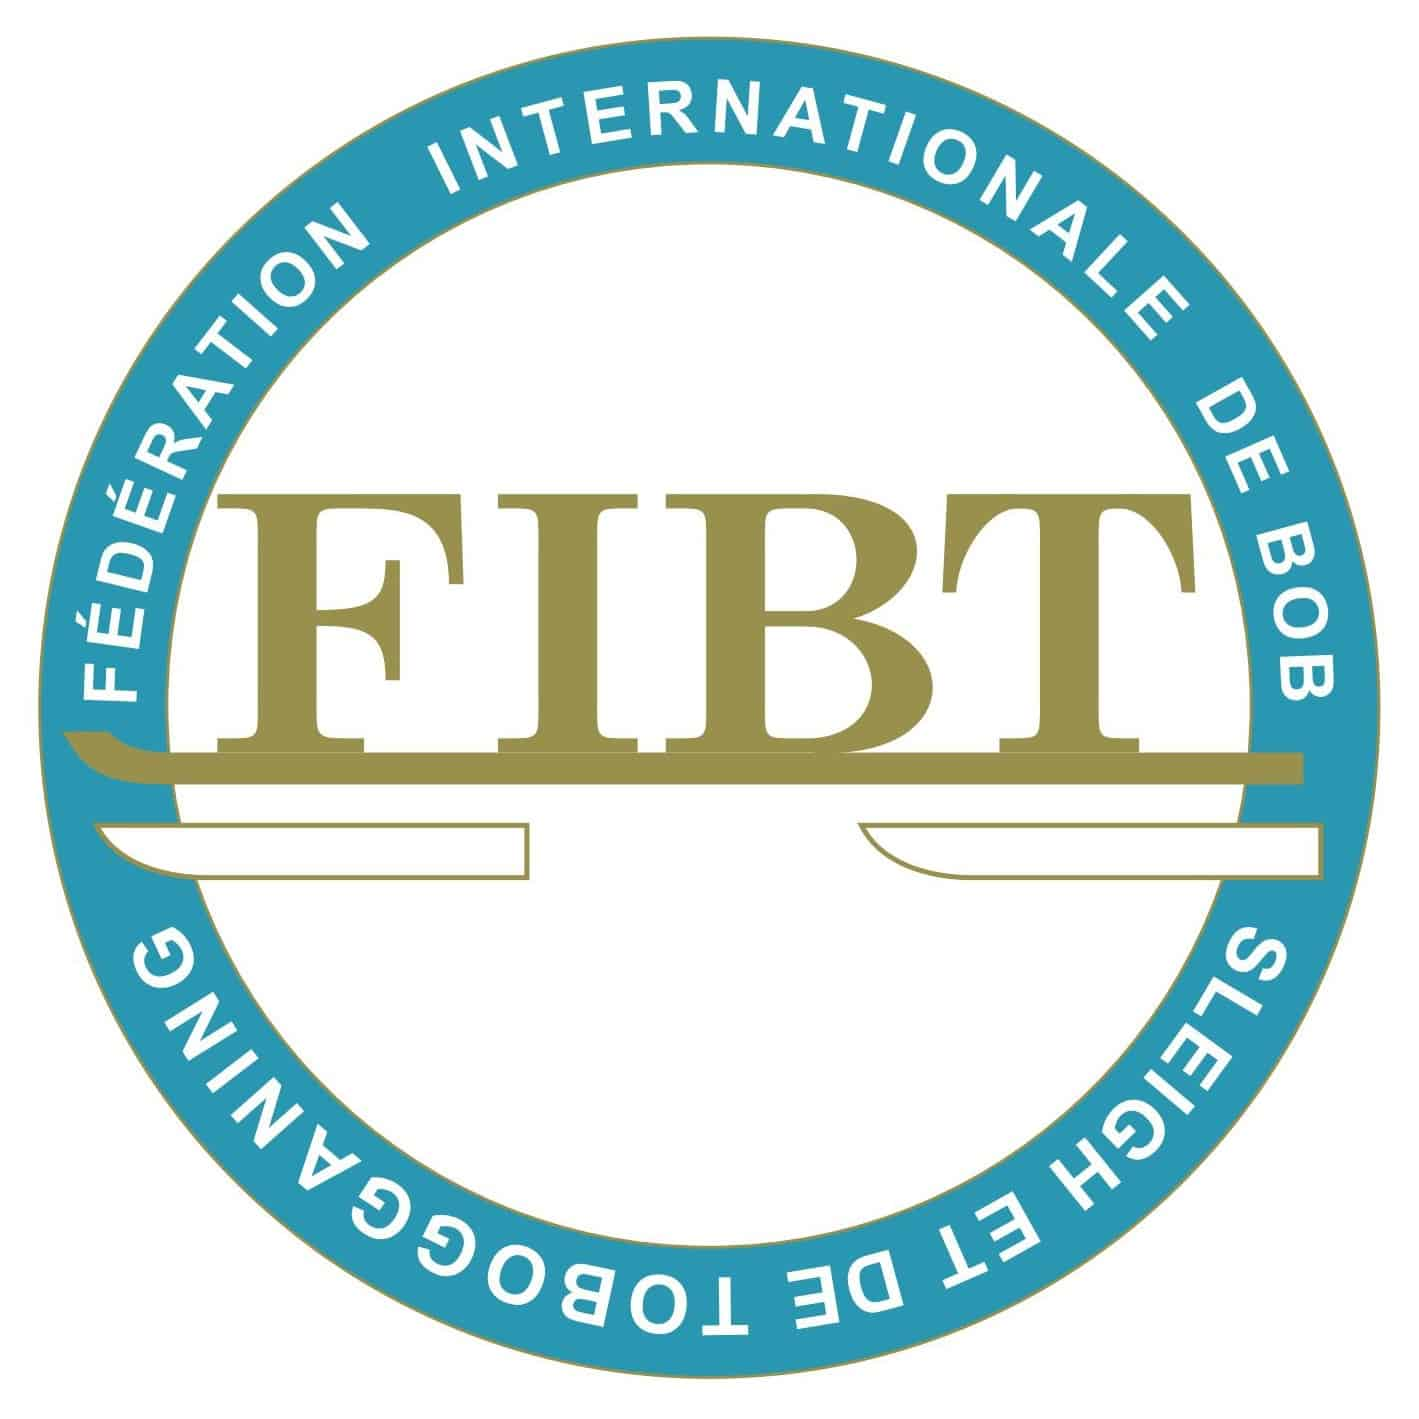 FIBT Federation Internationale de Bobsleigh et de Tobogganing logo